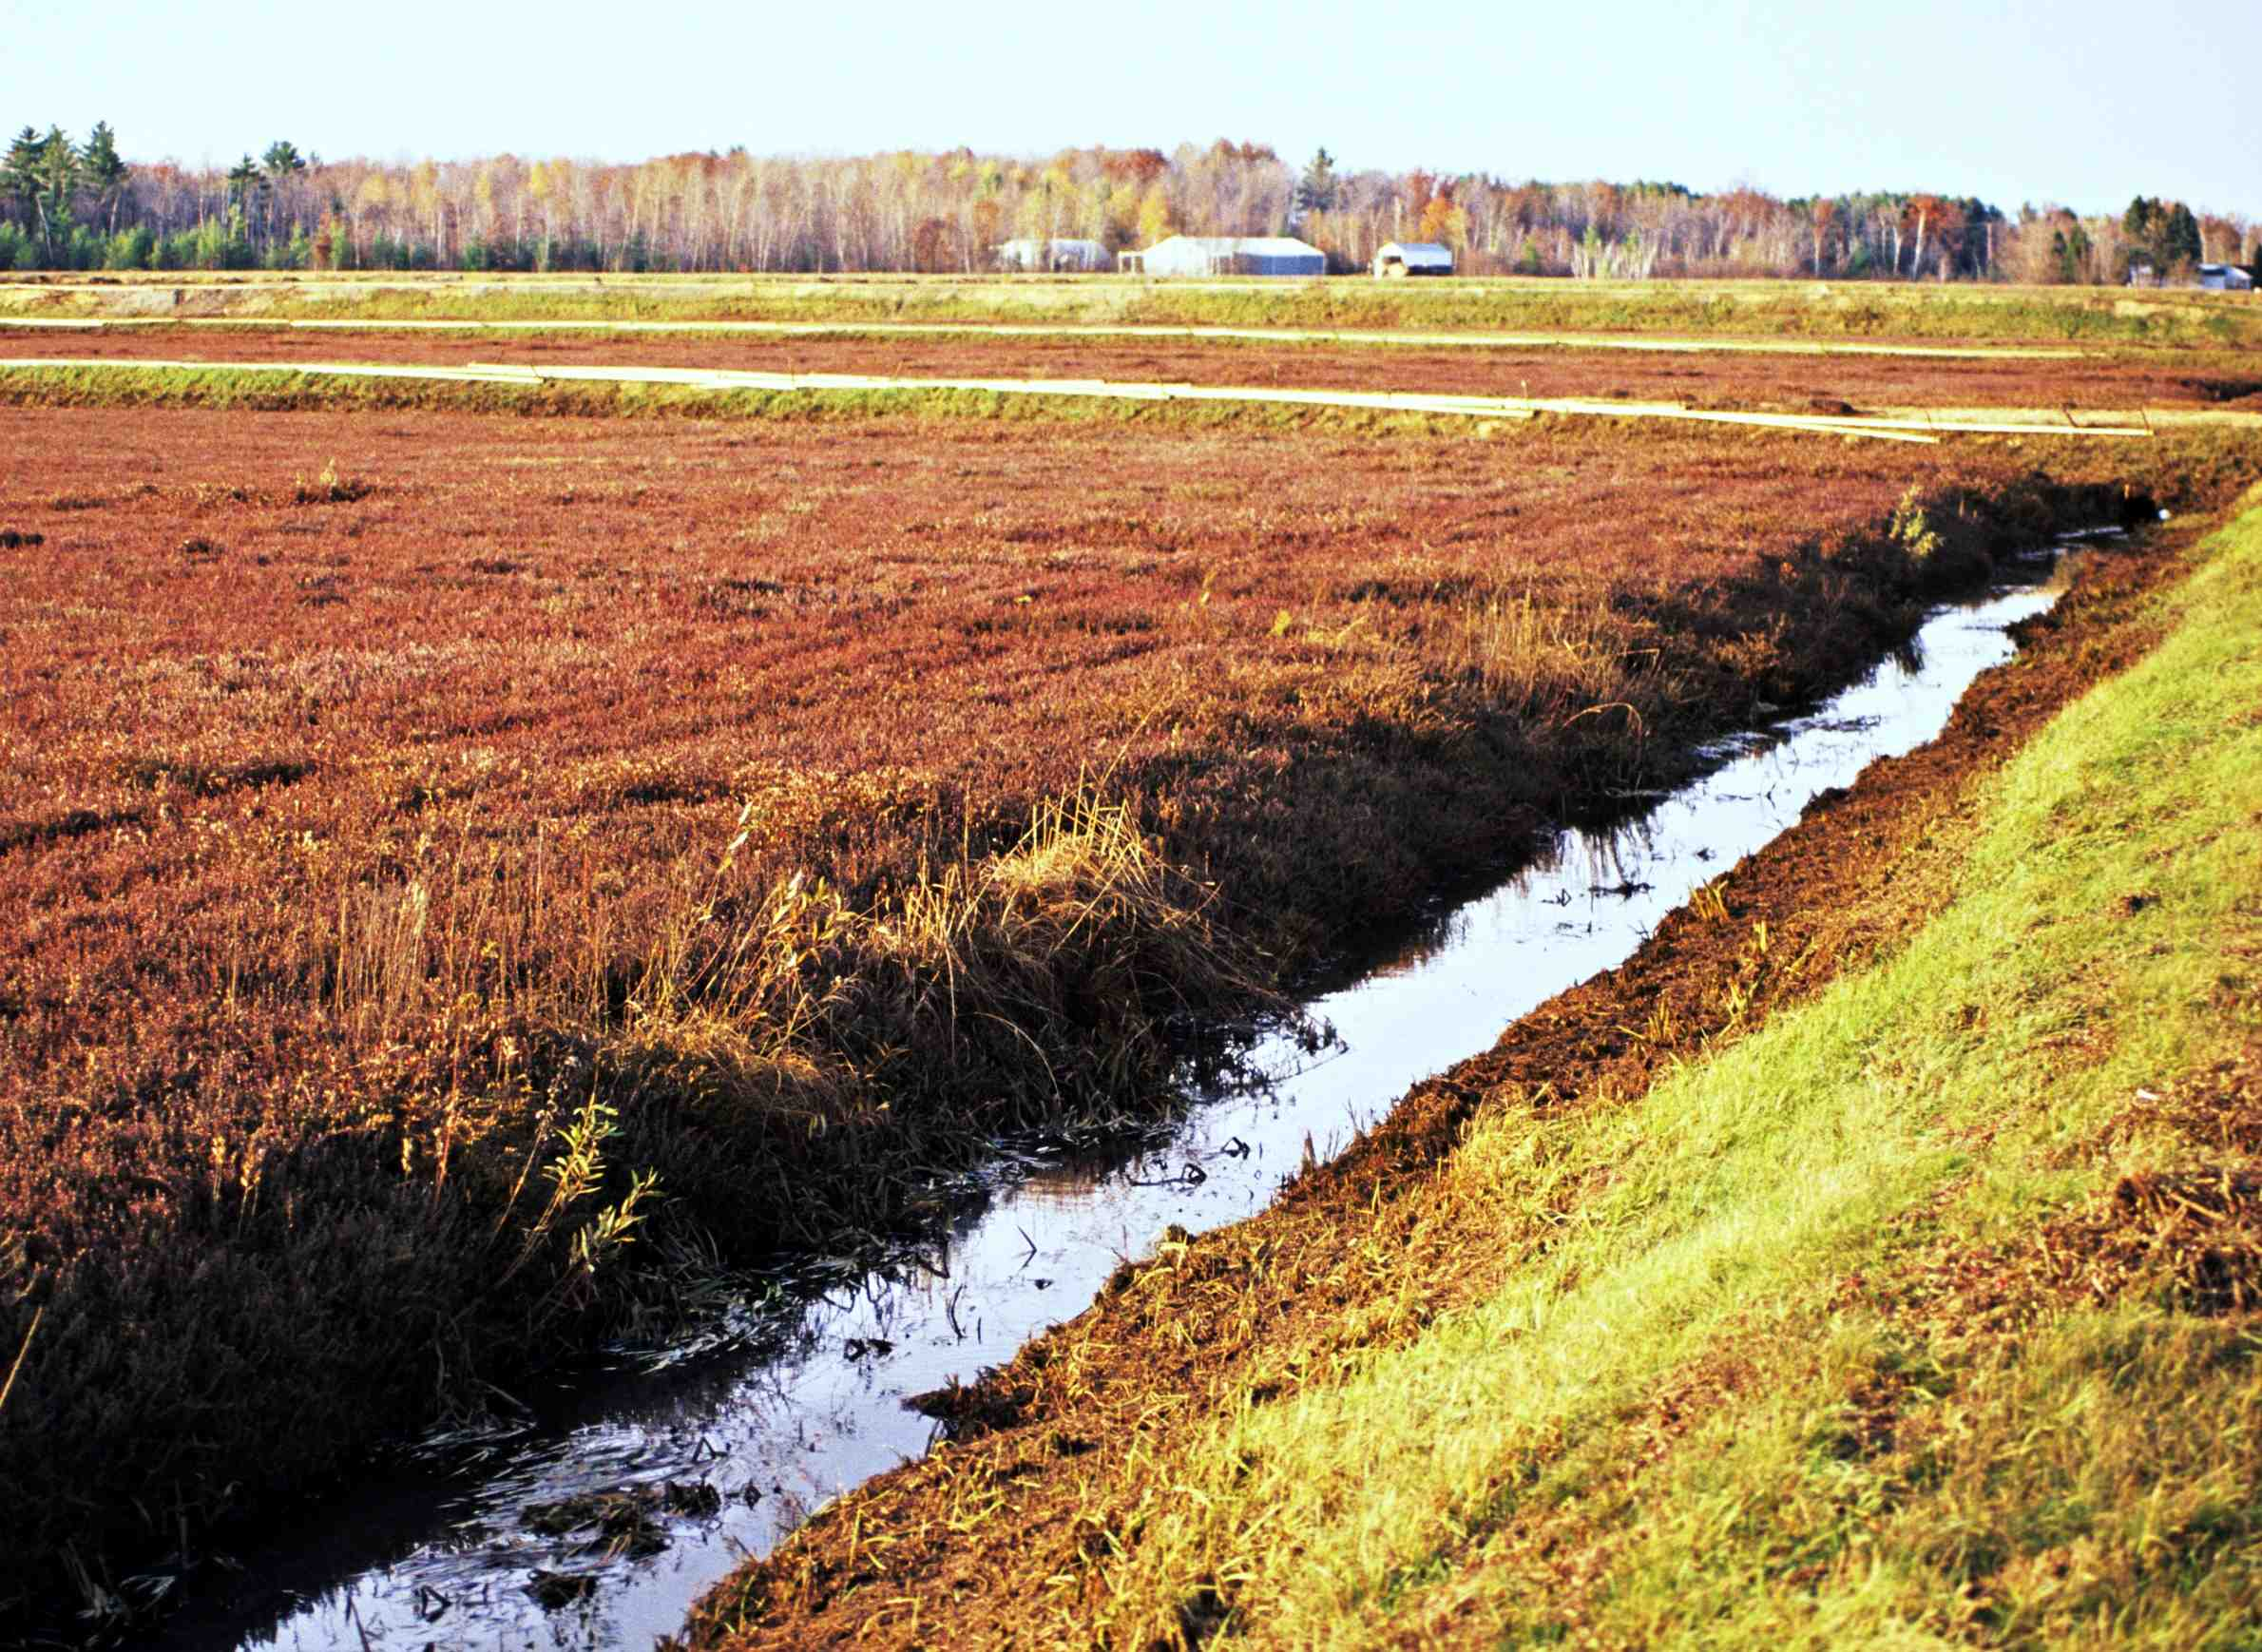 wpr-thewestside-cranberries-field-ditch.jpeg